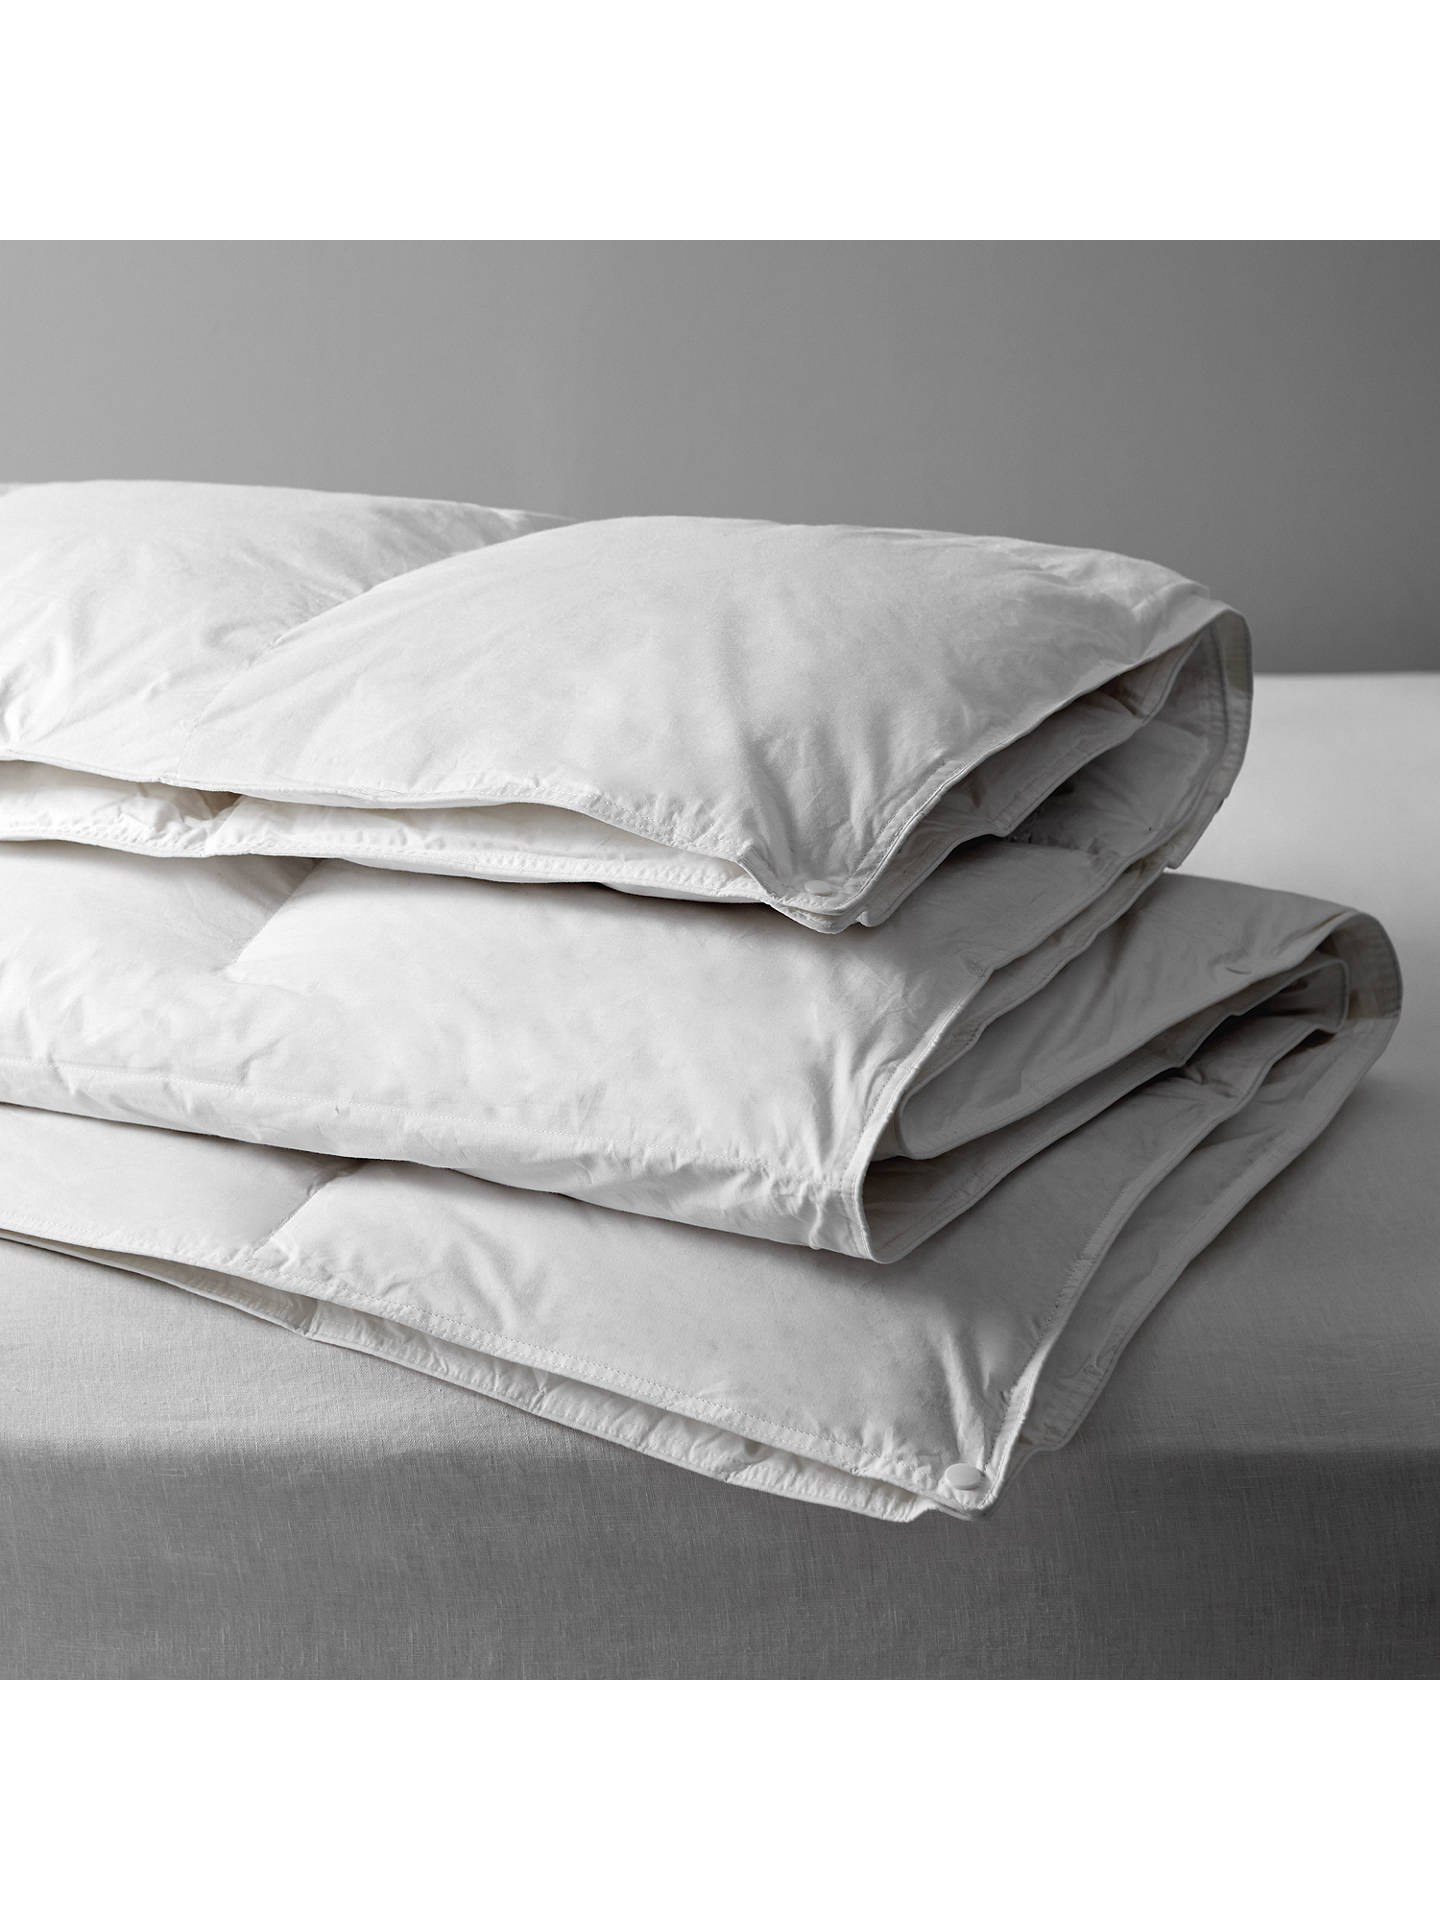 John Lewis & Partners Natural Duck Feather And Down Duvet, 13.5 Tog (4.5 + 9 Tog) All Seasons by John Lewis & Partners